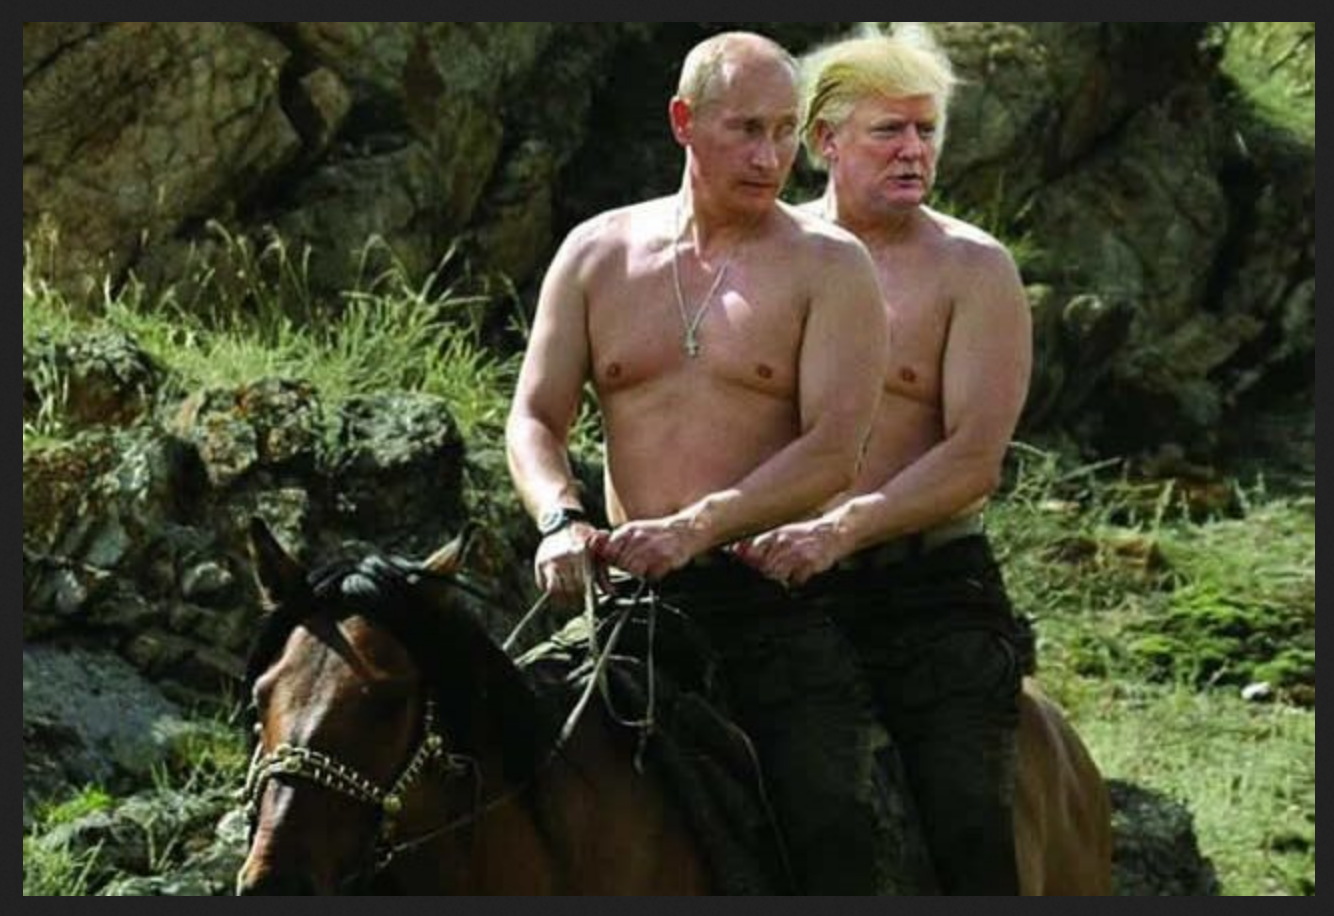 Vlad and Donny horseback 2